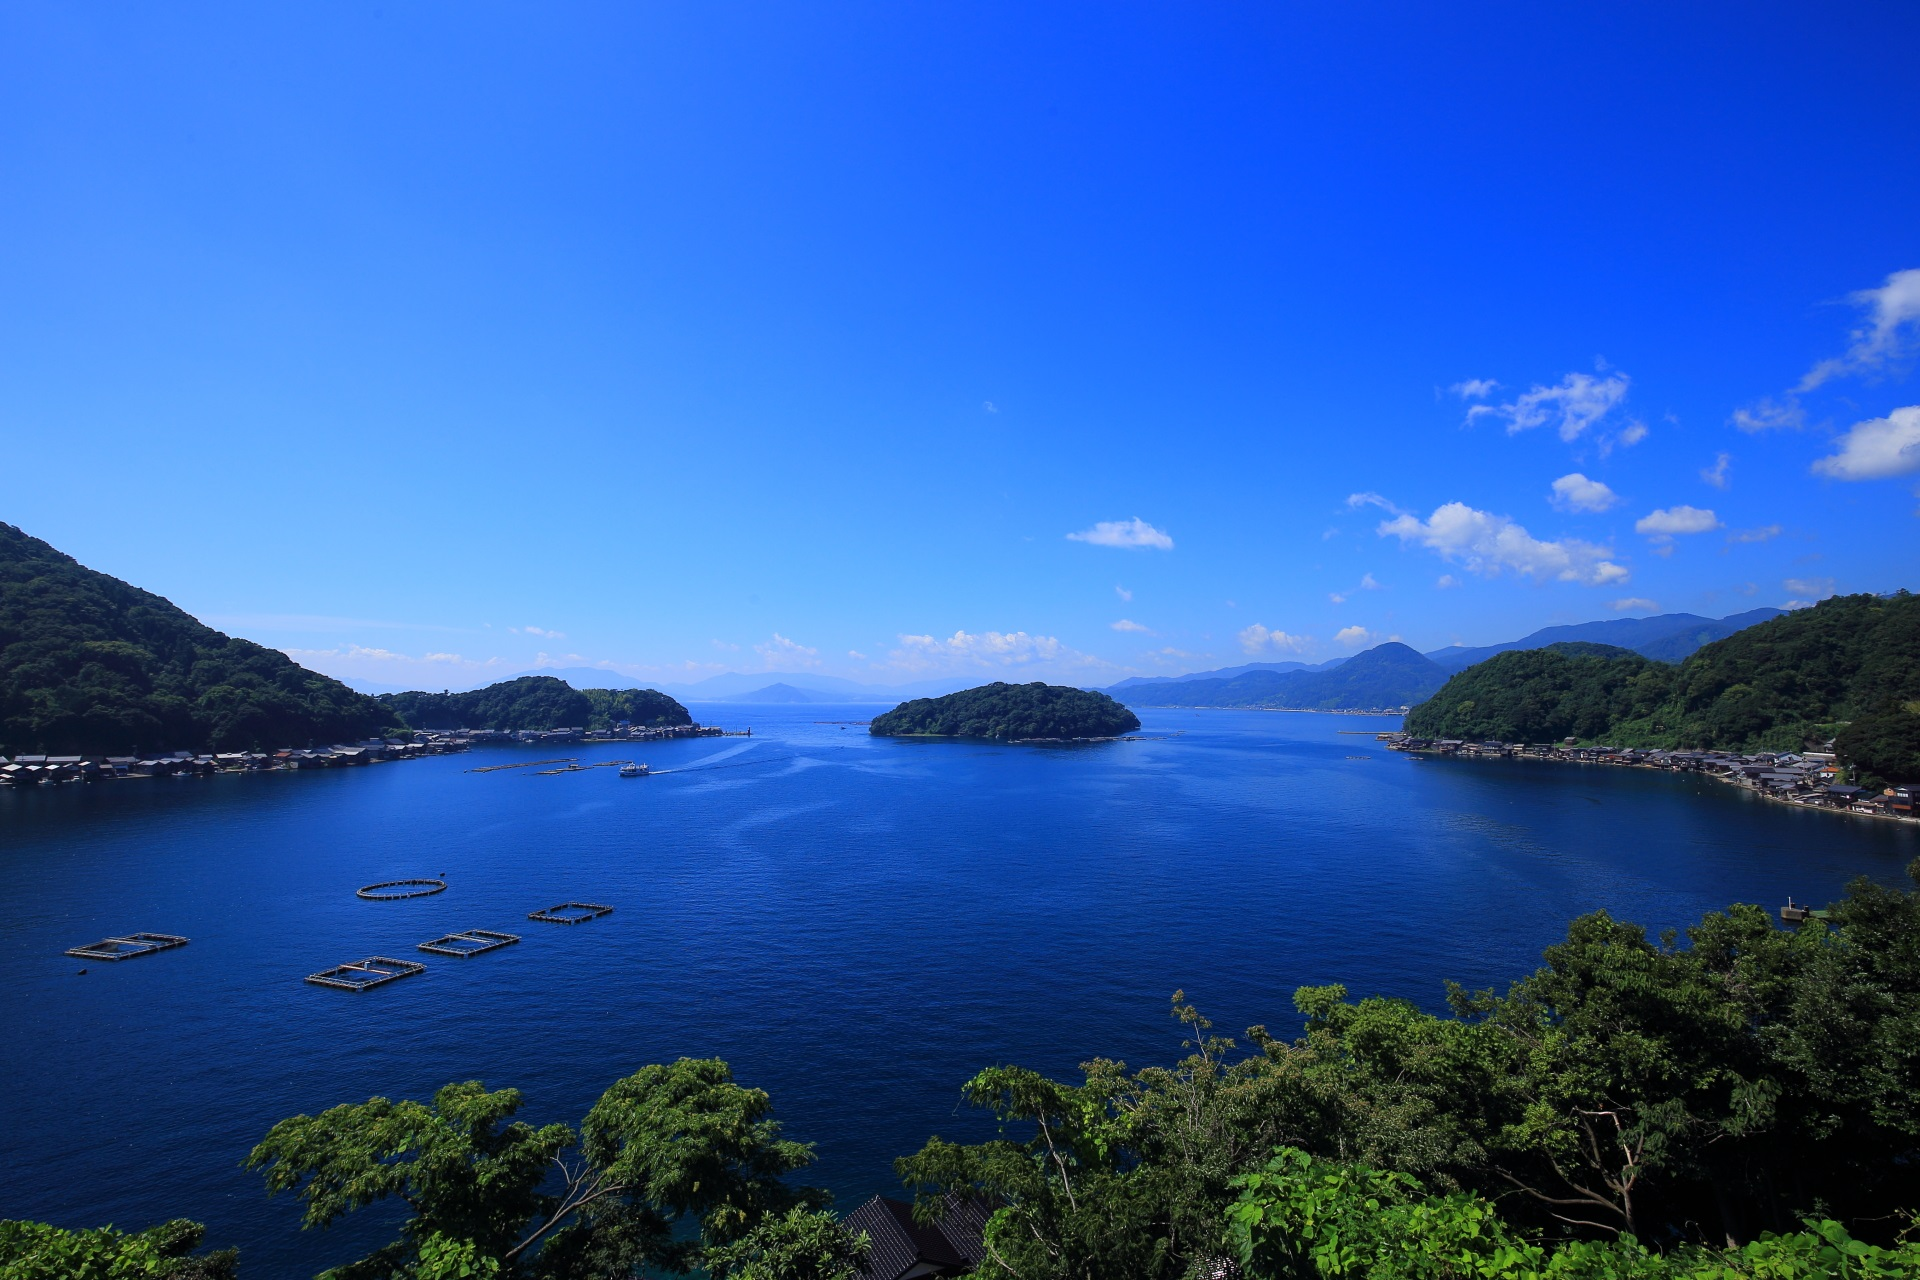 Ine-wan Bay in Kyoto, a beautiful blue sky and blue sea